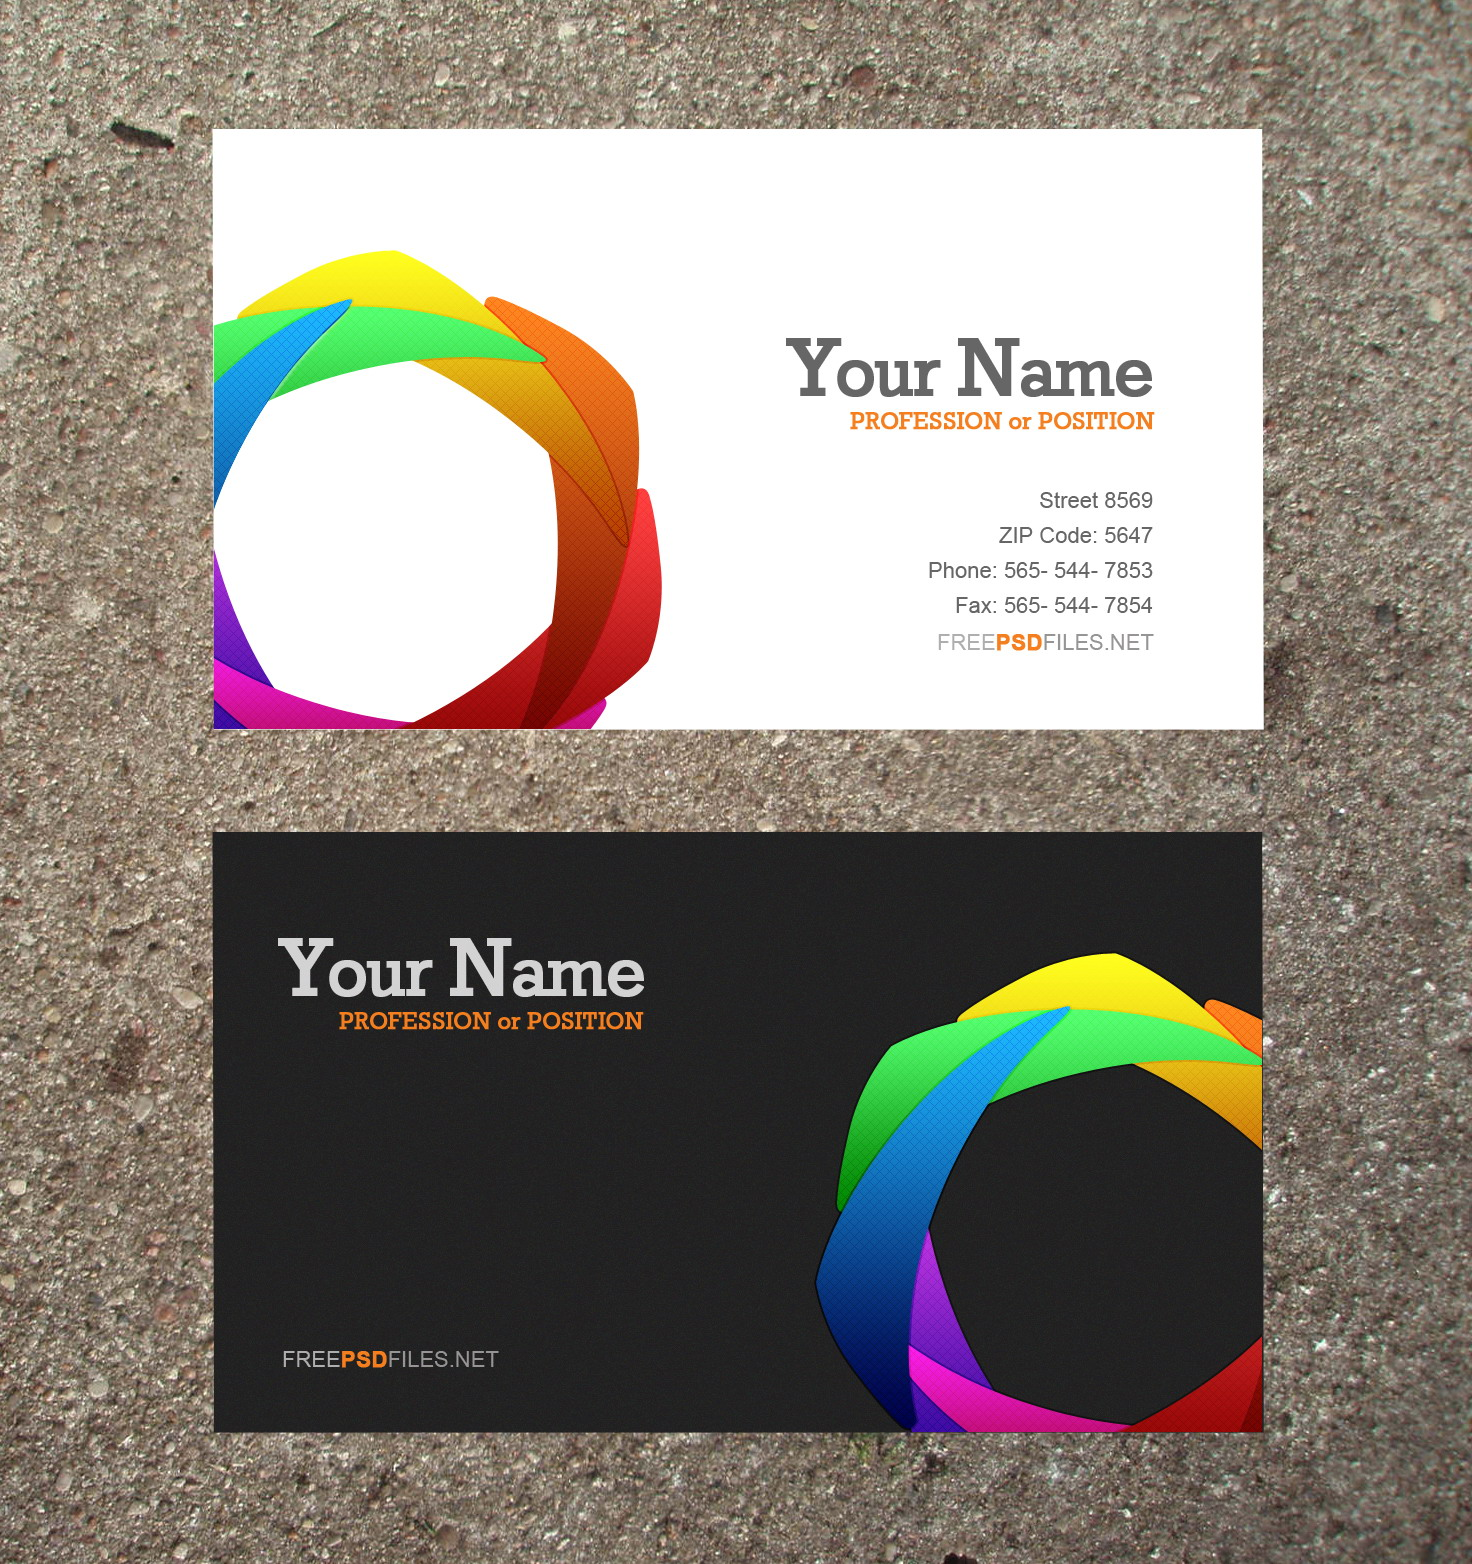 free download business card templates joselinohouse free download business card templates colourmoves